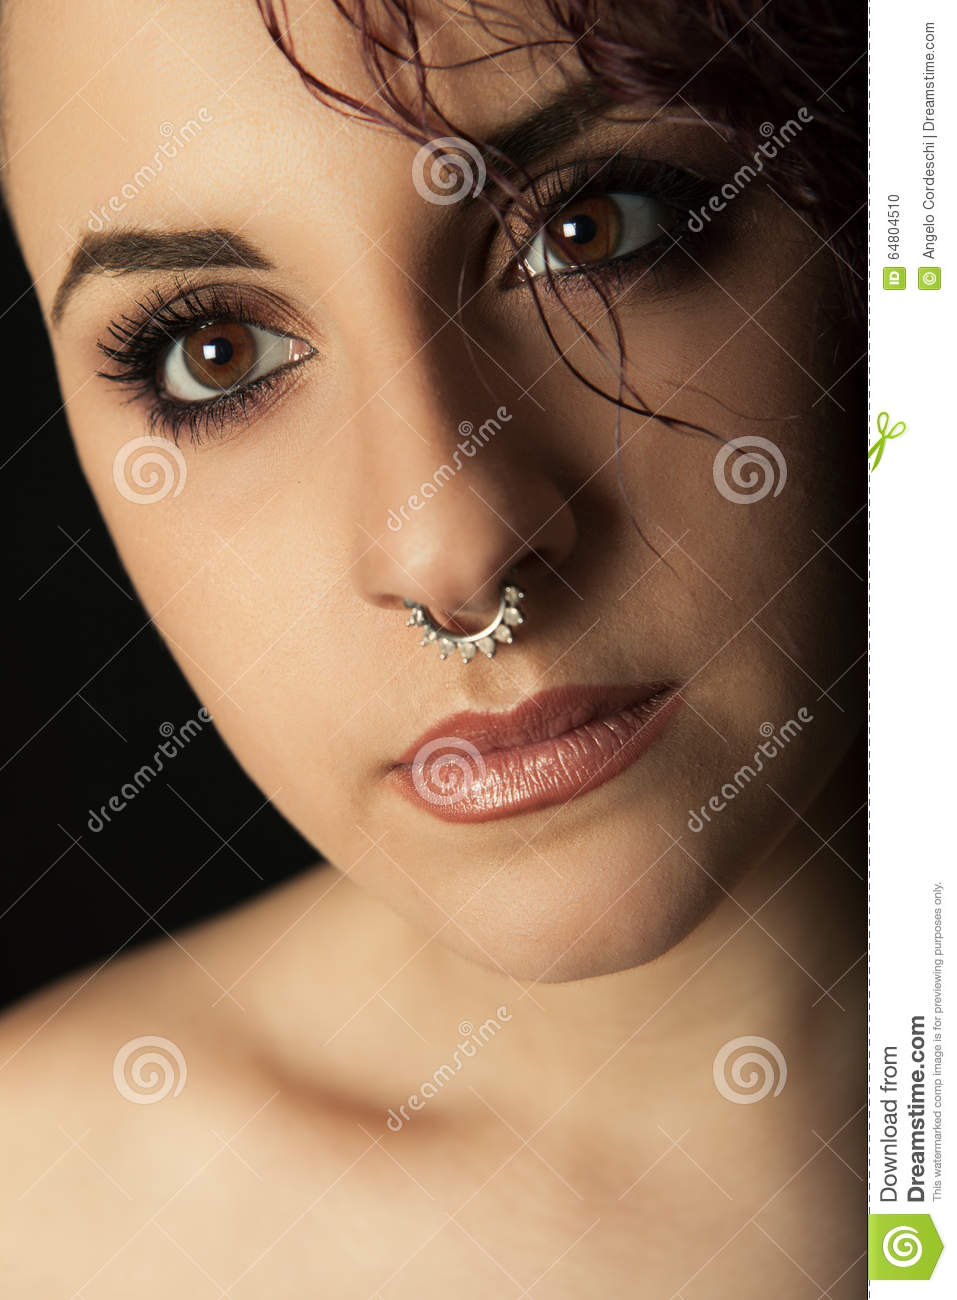 Close Portrait Young Girl With Nose Ring Stock Photo Image Of Cute Expression 64804510